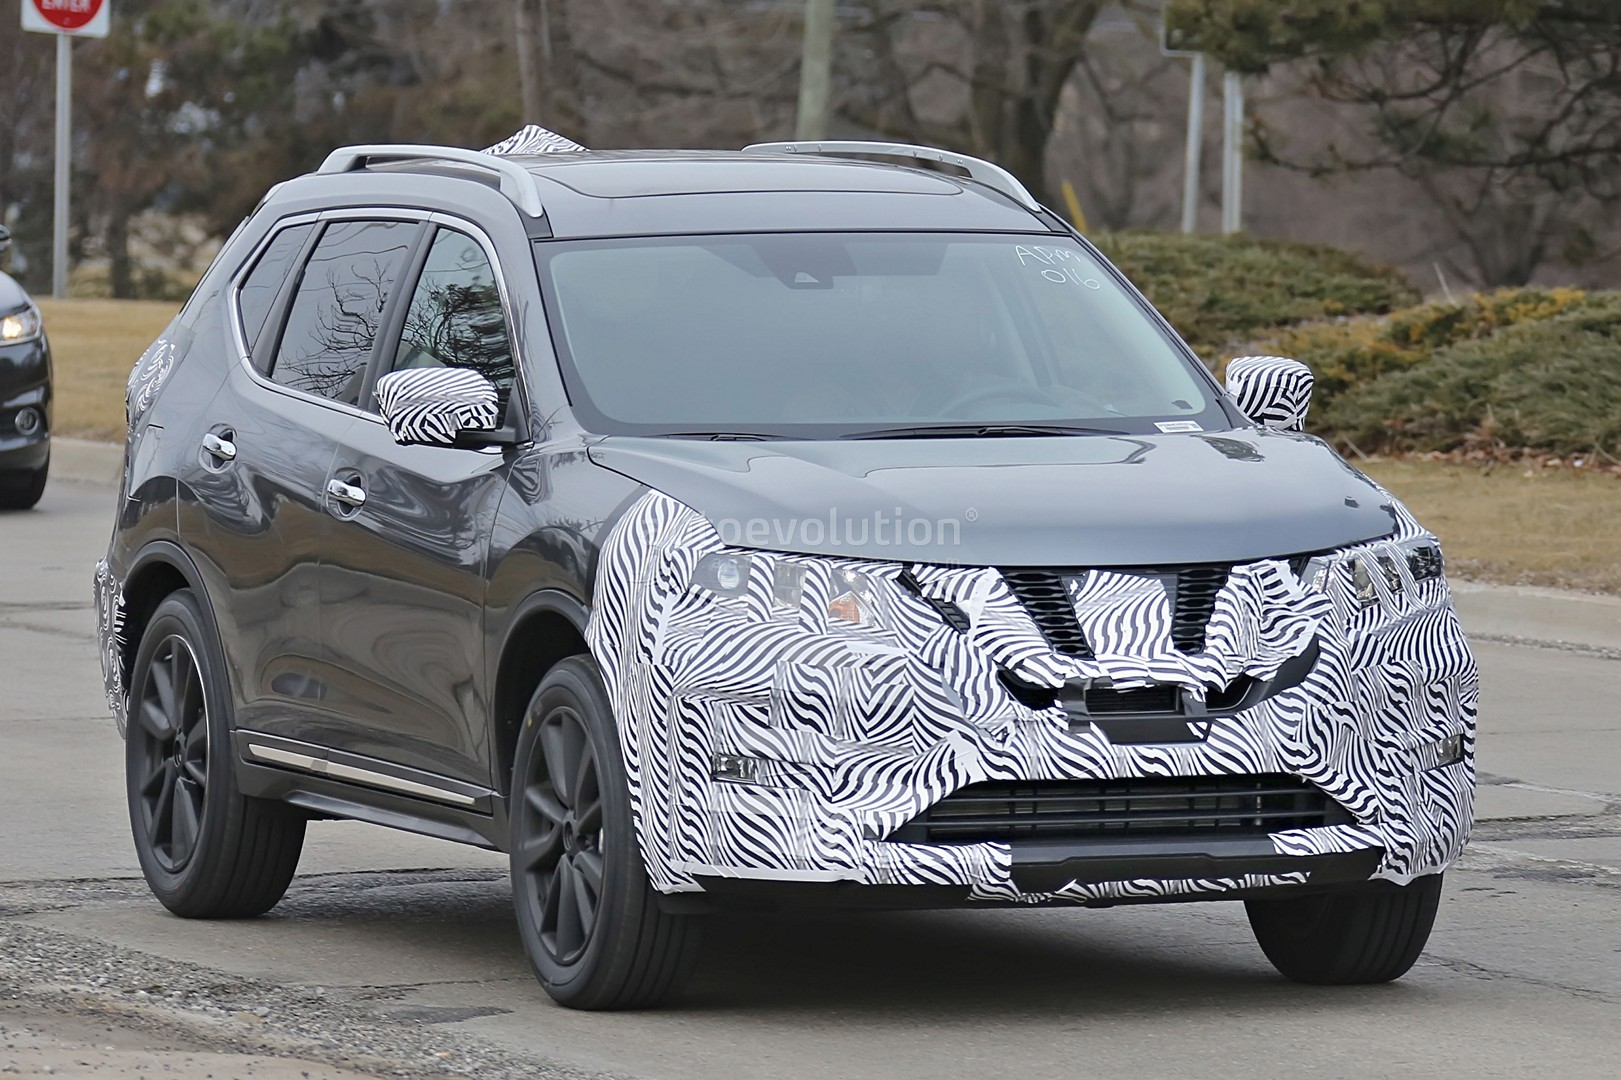 2017-nissan-rogue-spied-with-cosmetic-updates_4.jpg